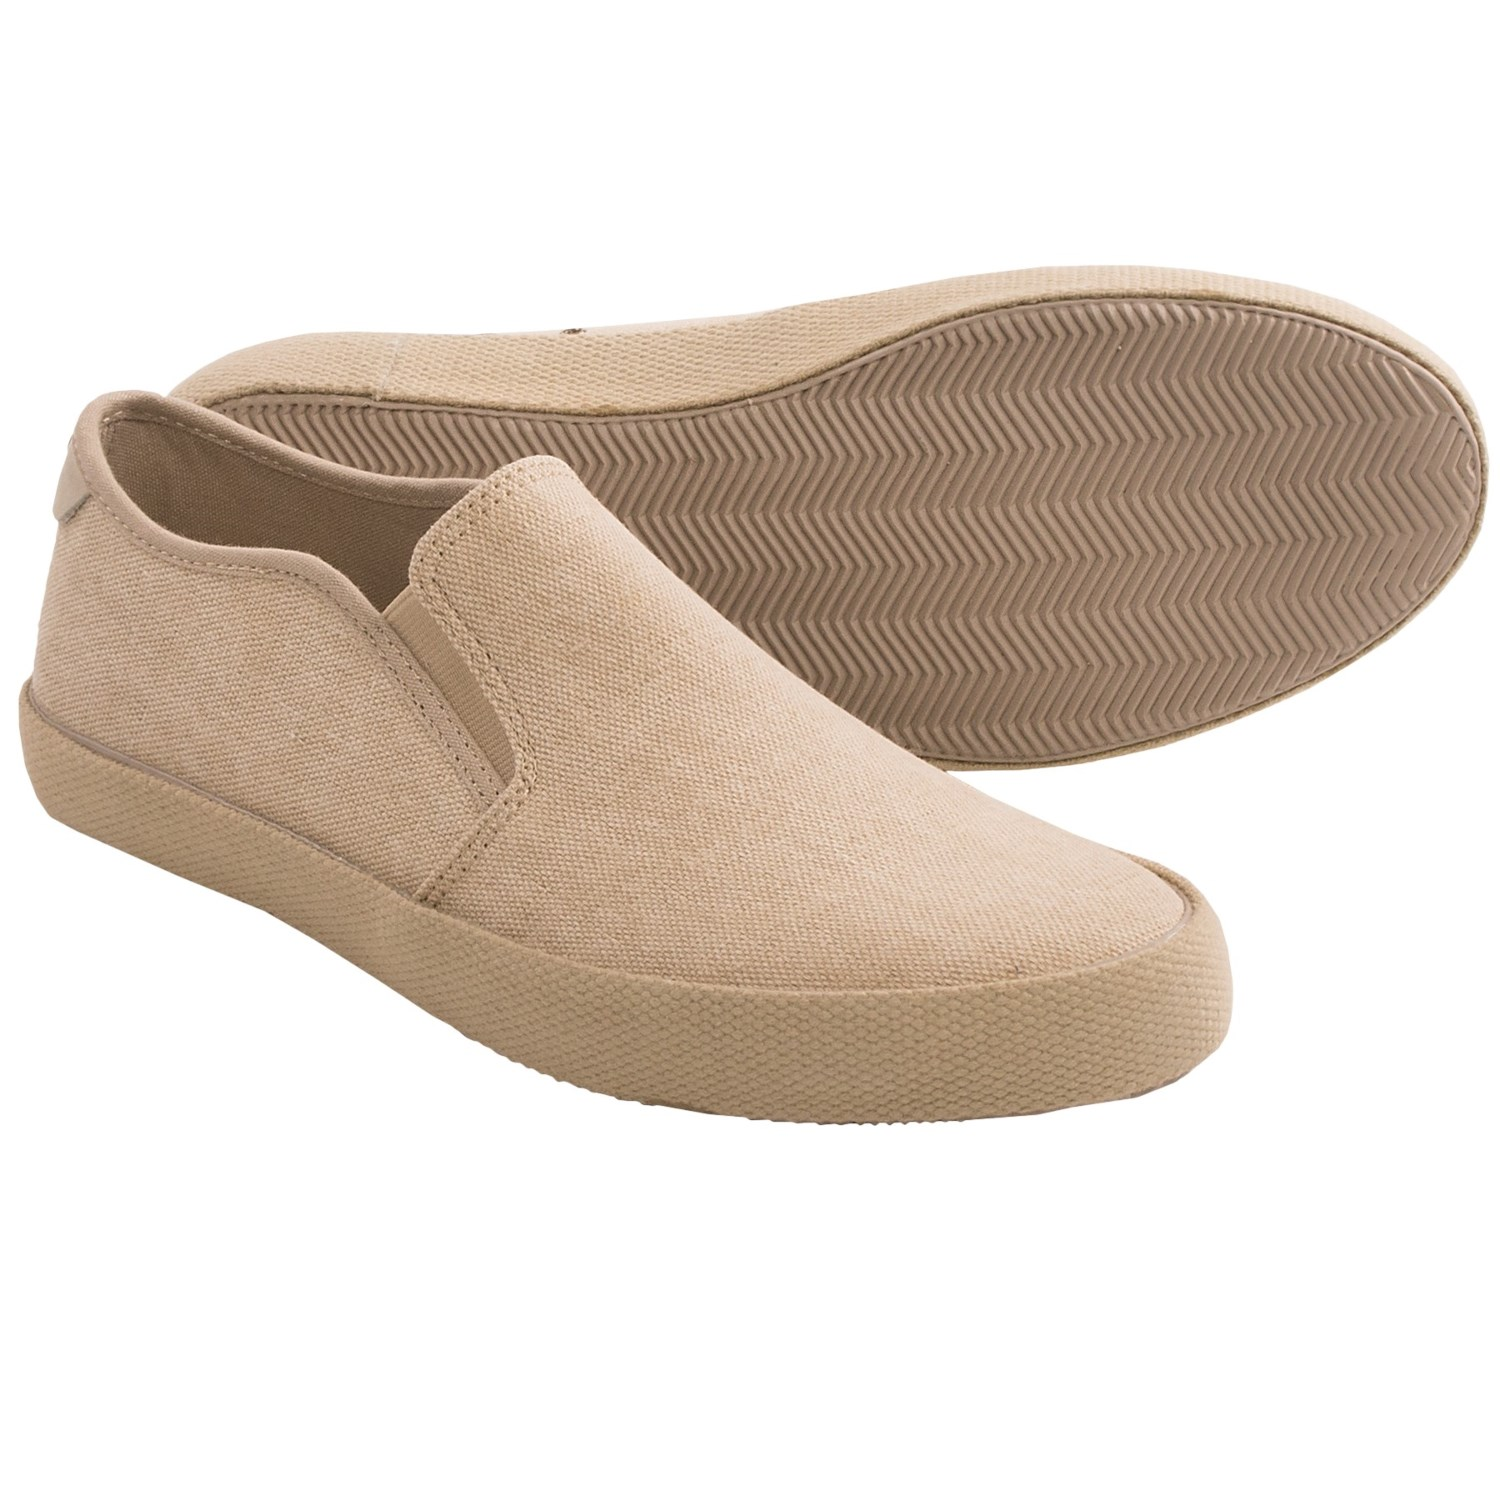 penguin footwear espy slip on shoes canvas for